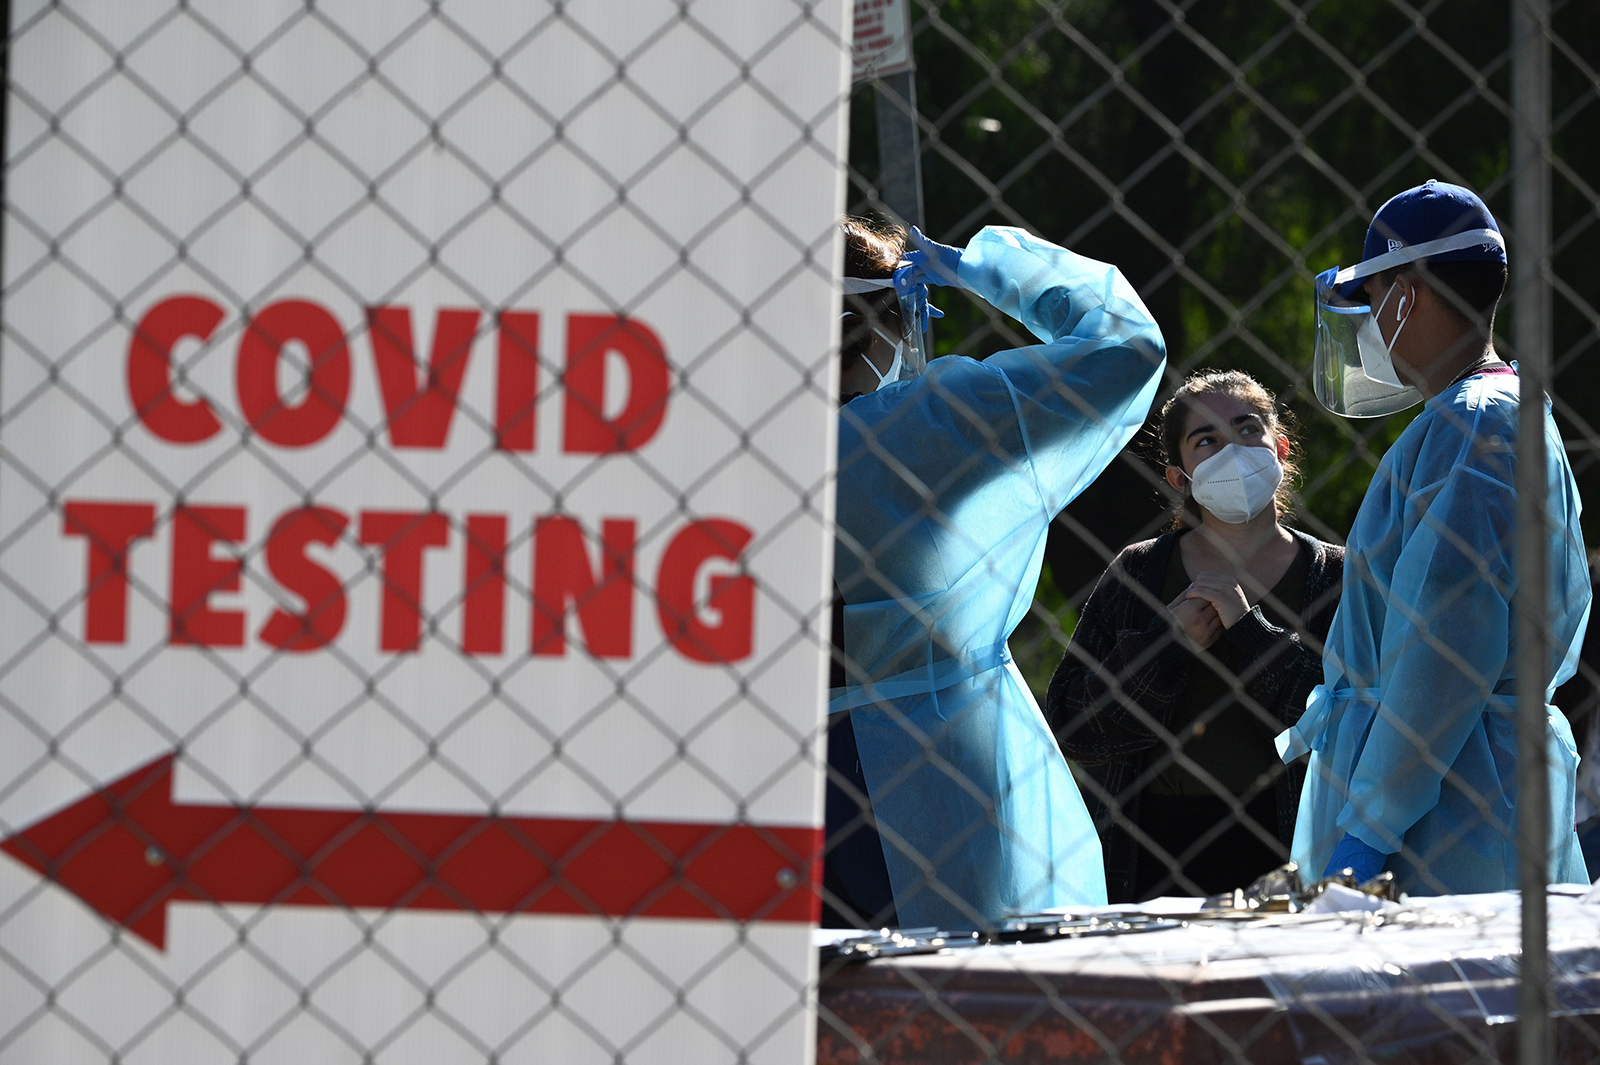 Healthcare workers are seen at a walk-up Covid-19 testing site, November 24, in San Fernando, California.